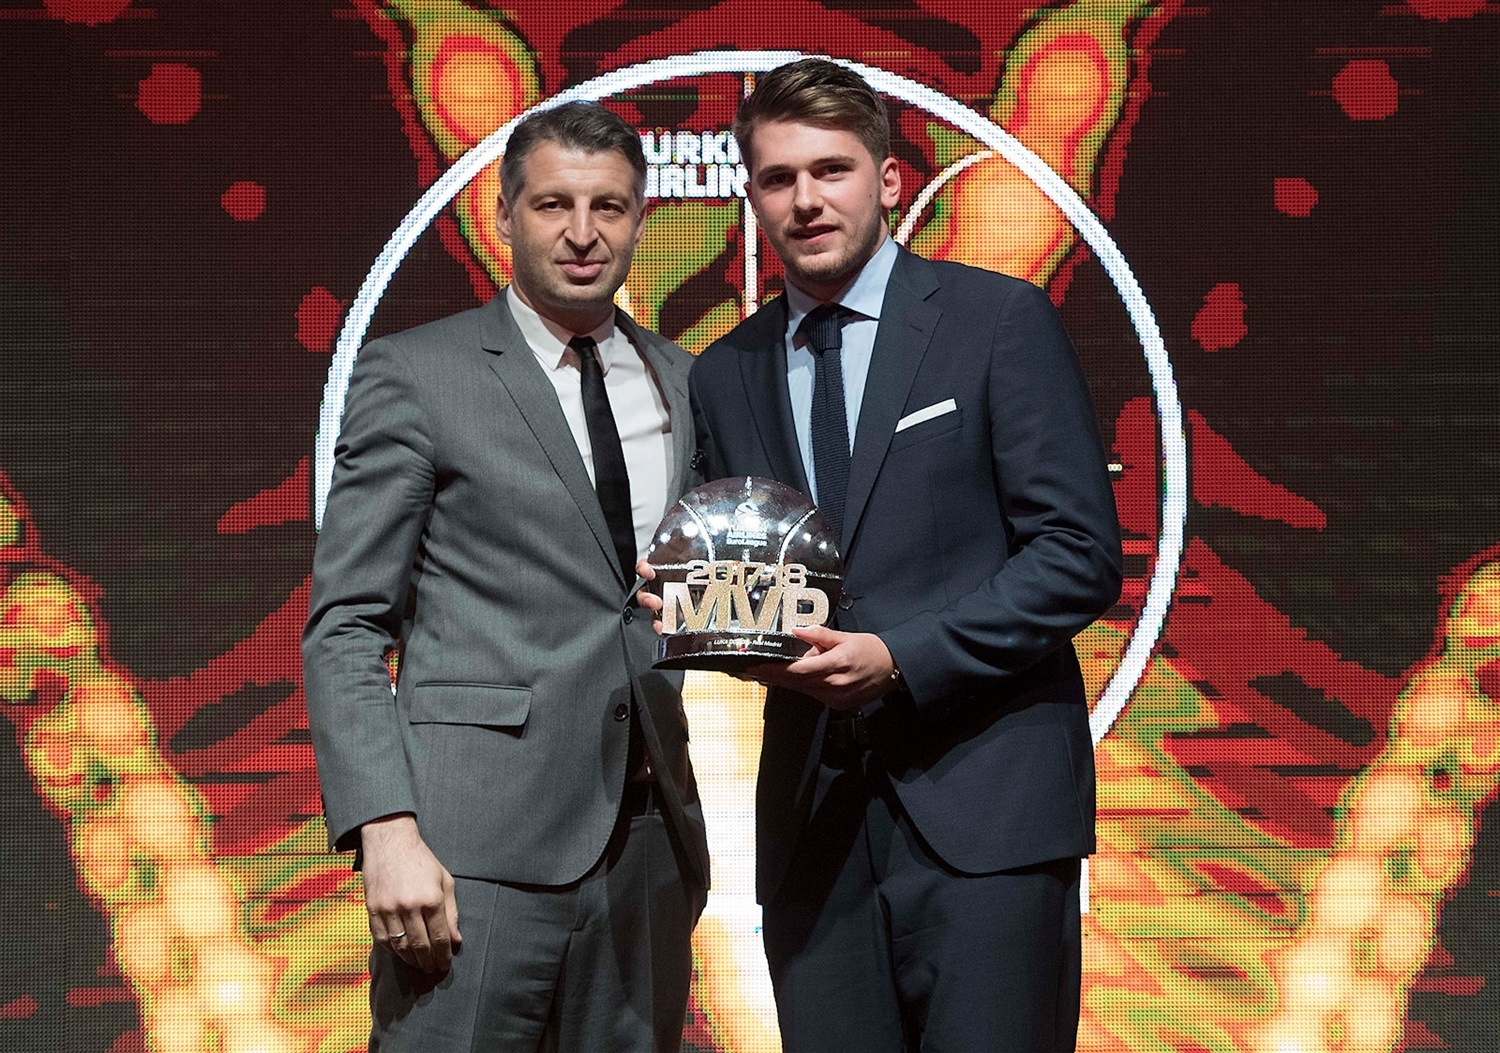 Luka Doncic, MVP 2017-18 - Awards ceremony - Belgrade 2018 - EB17